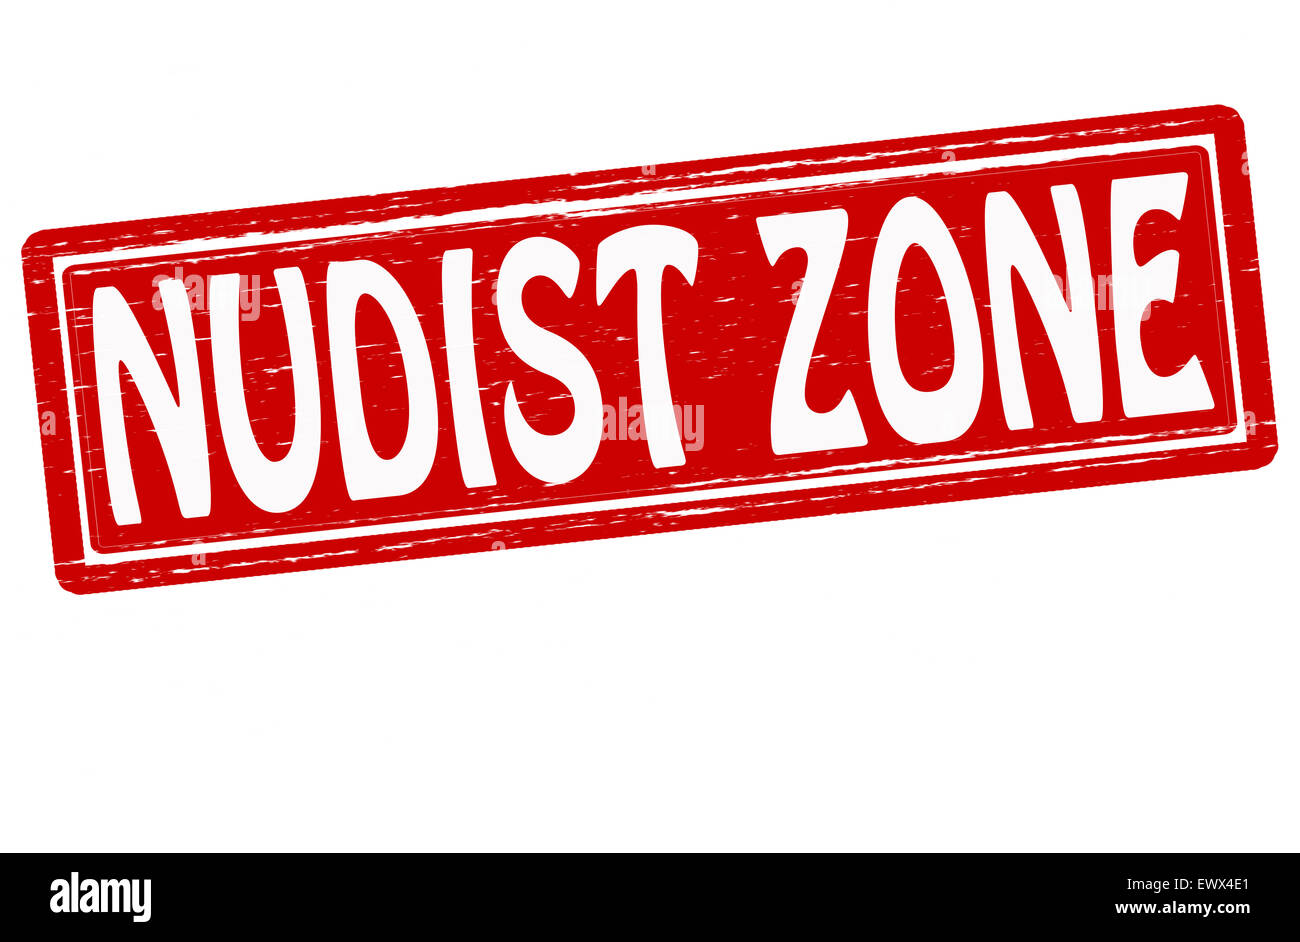 Nudist Zone Stamp with text nudist zone inside, illustration